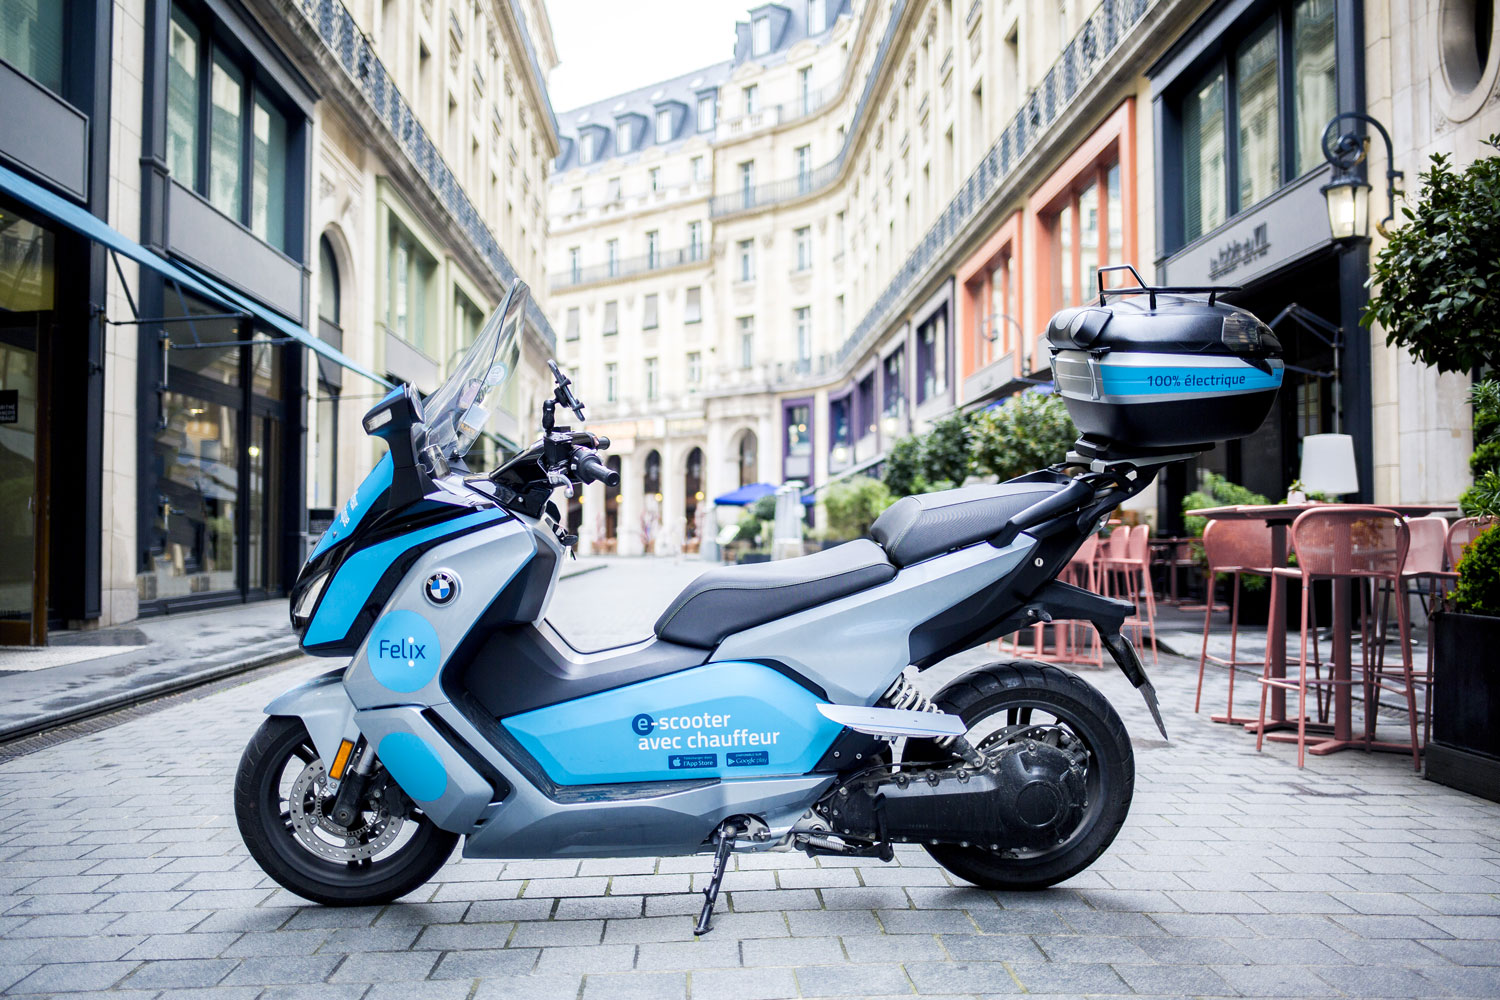 100% electric scooters - Our fleet of BMW e-scooters allows you to daily move with zero environmental impacts. Felix get involved in sustainable urban mobility